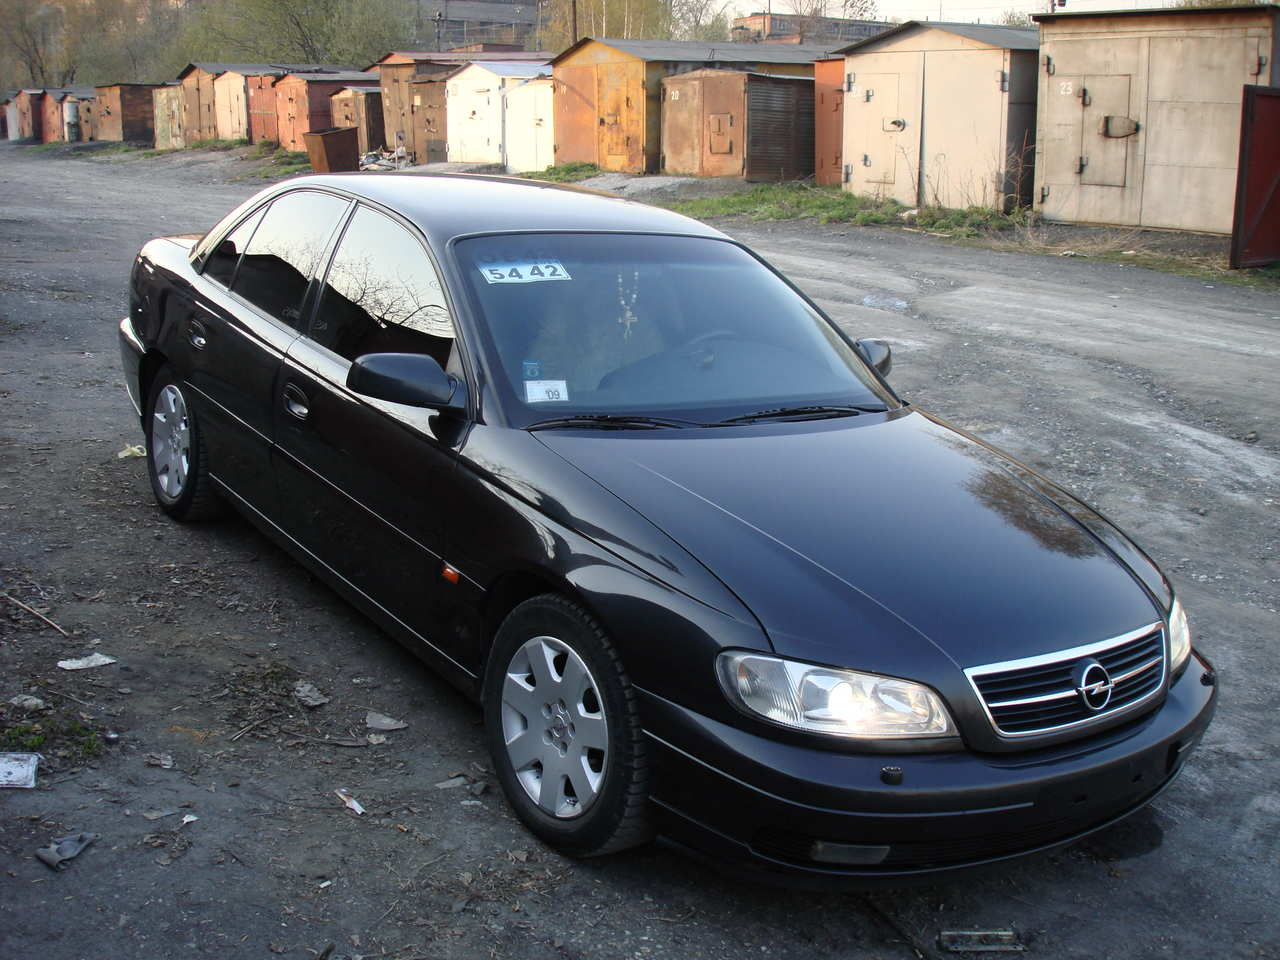 2000 Opel Omega Specs  Engine Size 2200cm3  Fuel Type Gasoline  Drive Wheels Fr Or Rr